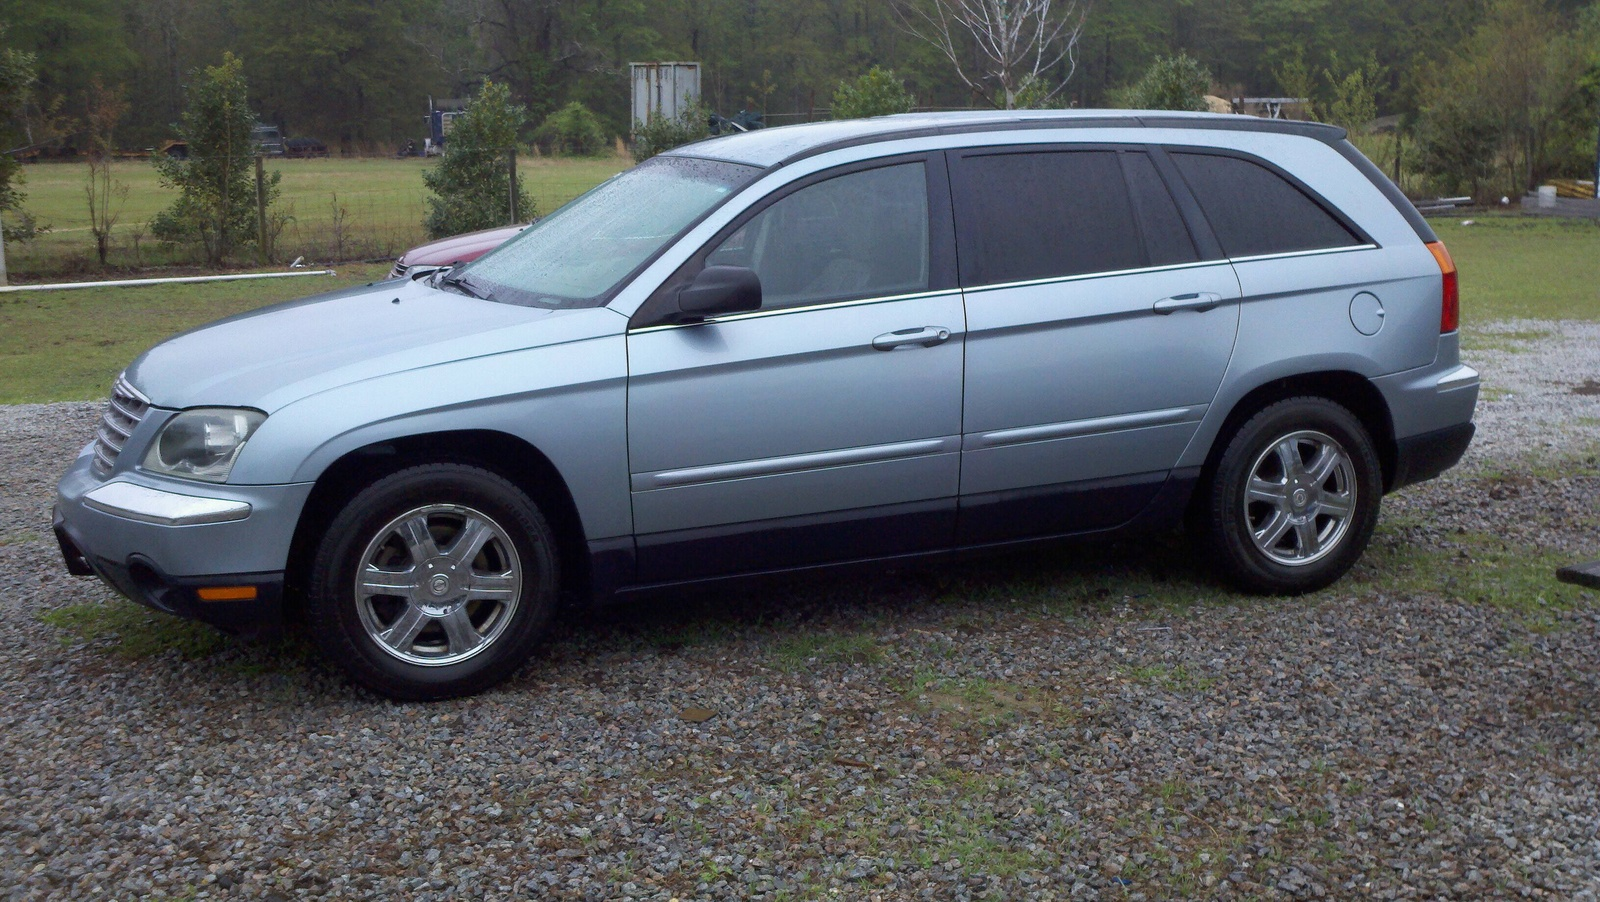 2004 Chrysler Pacifica - Pictures - Picture of 2004 Chrysler Pacif ...